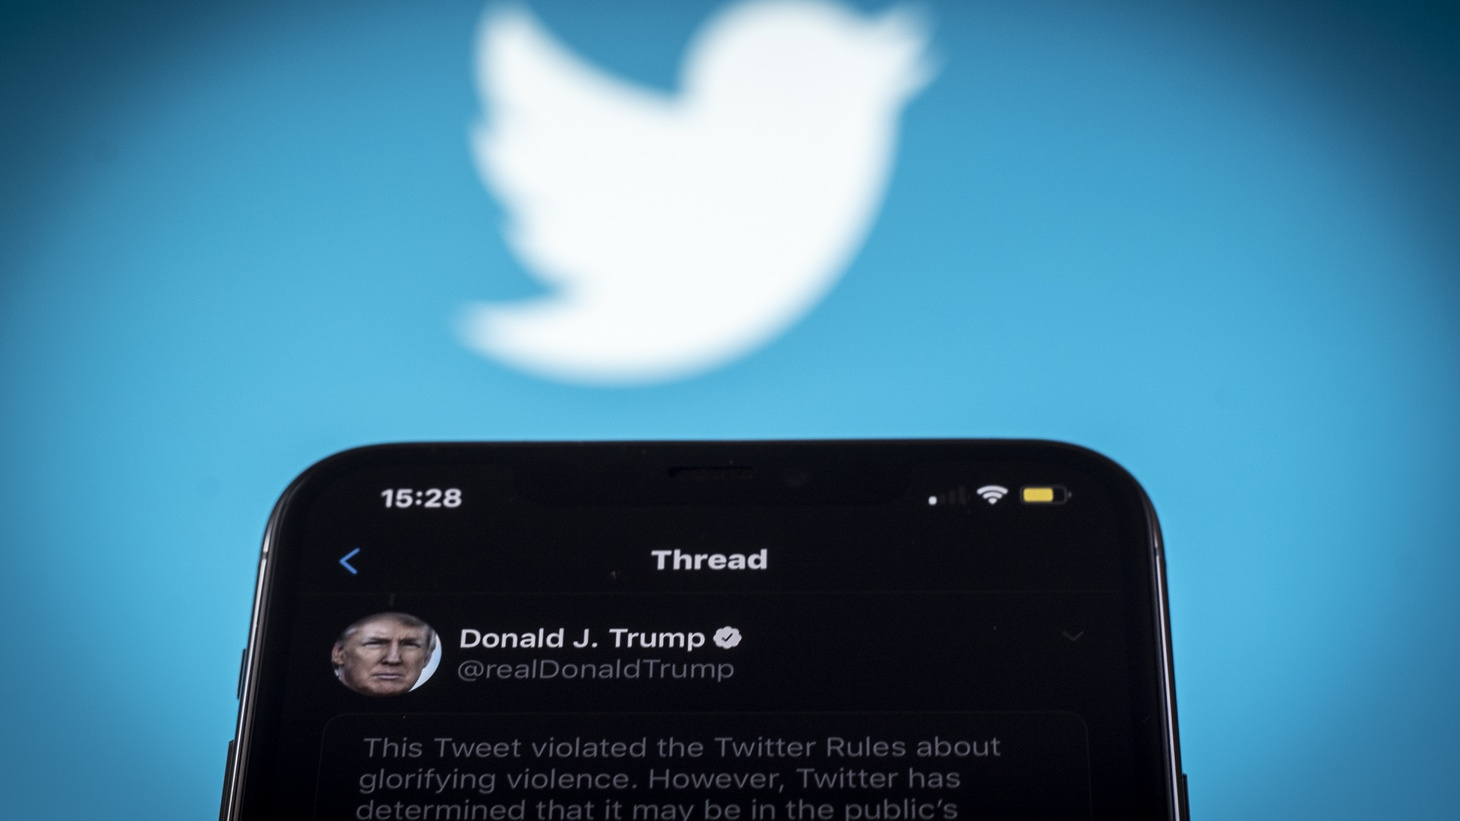 A tweet by US president Donald Trump is seen being flagged as inciting violence by Twitter in this photo illustration on an Apple iPhone in Warsaw, Poland on May 29, 2020. Twitter on May 29 applied a fact-checking label to a vote-in-mail tweet by US President Donald Trump that the company considers misleading. Twitter has recently started labelling tweets with public notification and fact check labels. The labelling of Trump's tweet about the uproar following the death of George Floyd has seen the president signing an executive order targeting the Communications Decency Act. Section 230 which protects social media companies against lawsuits against them for user generated content.